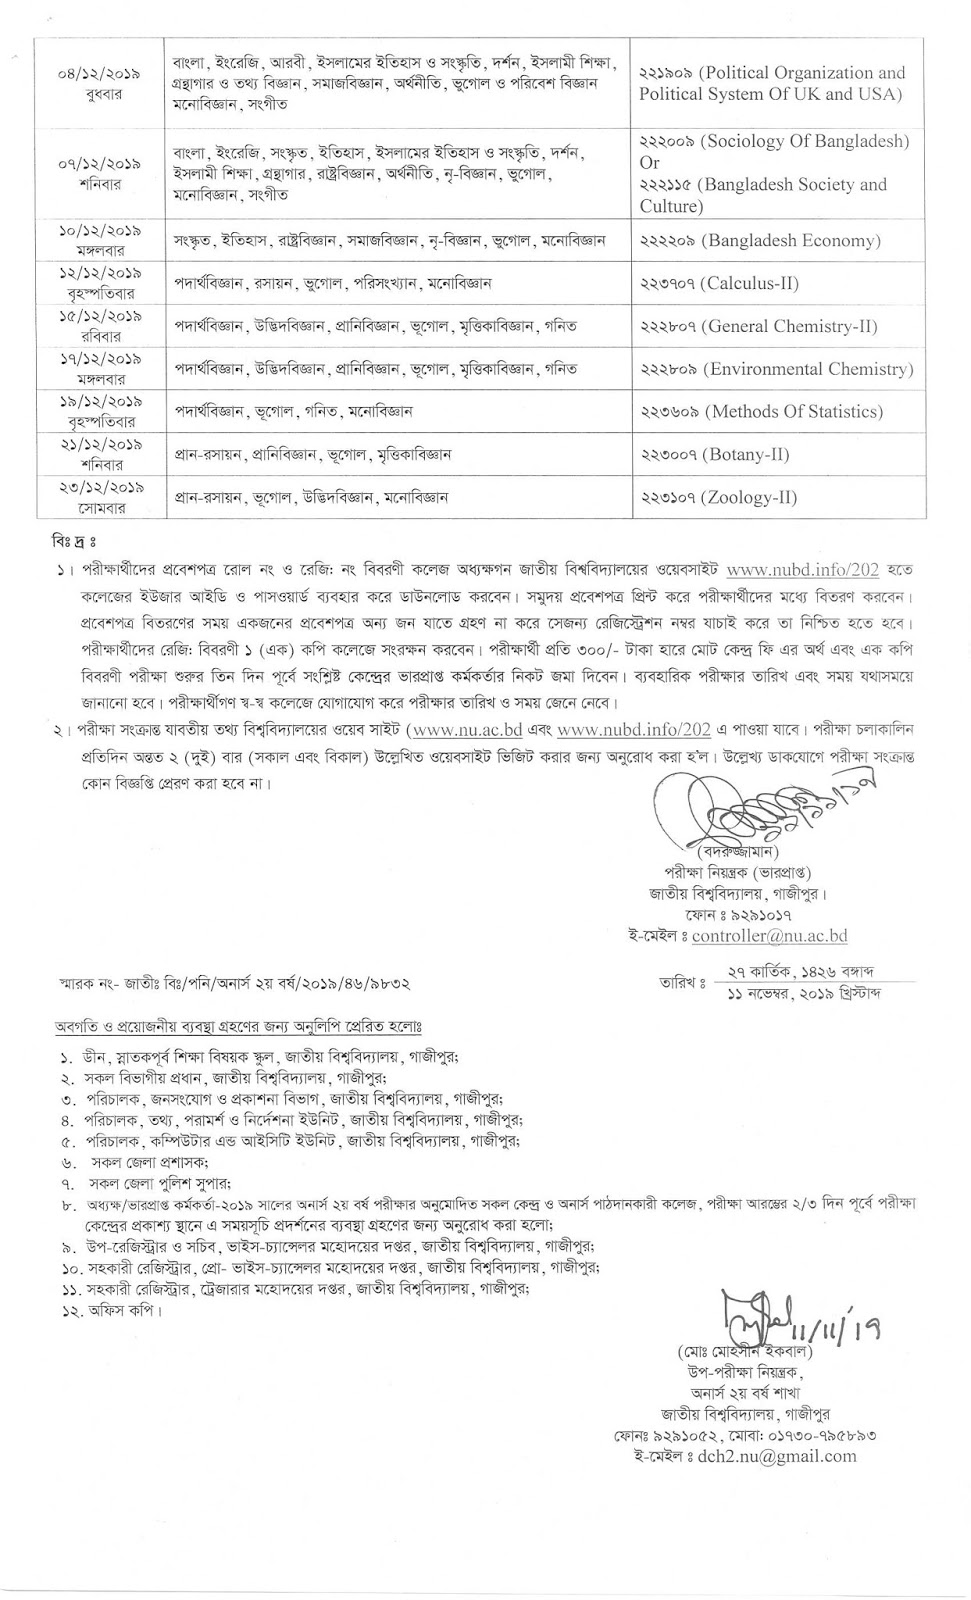 Honours 2nd Year Exam Routine 2019 Download